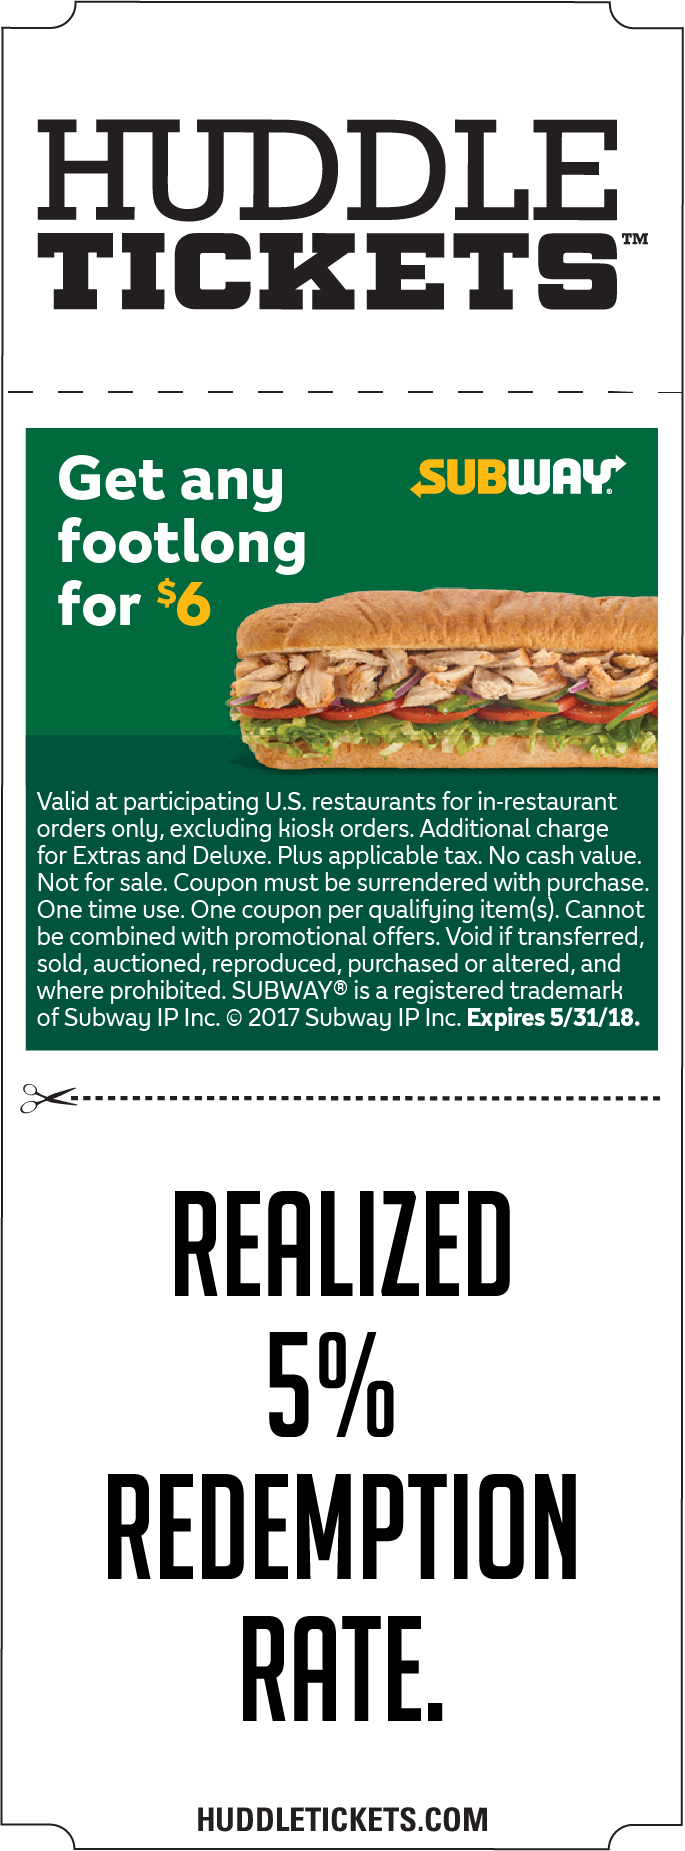 Huddle Tickets Case Study_Subway.png